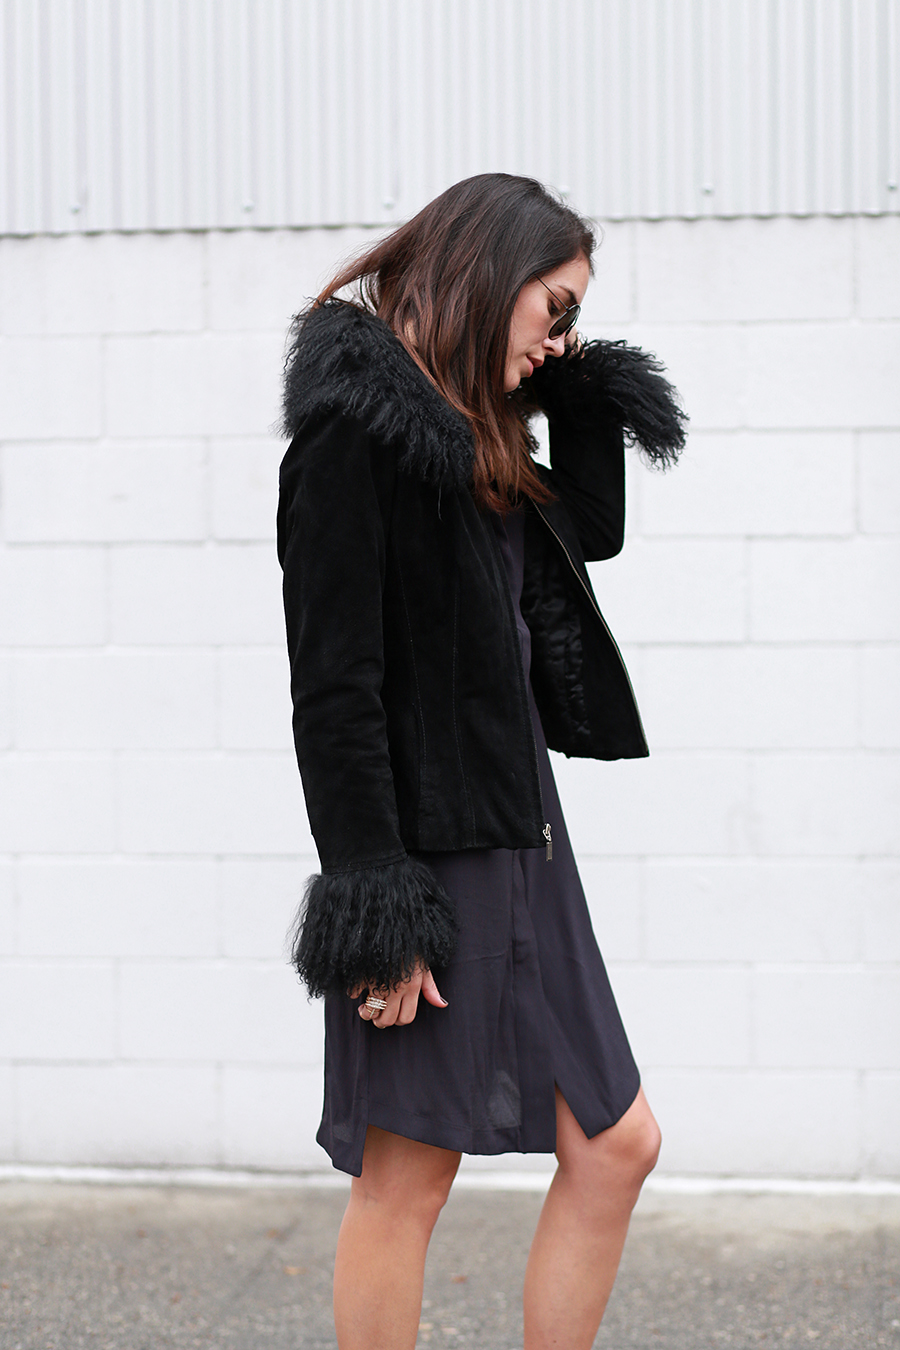 Brittany Xavier is wearing a black shirt dress from H&M and a black fur trimmed vintage jacket